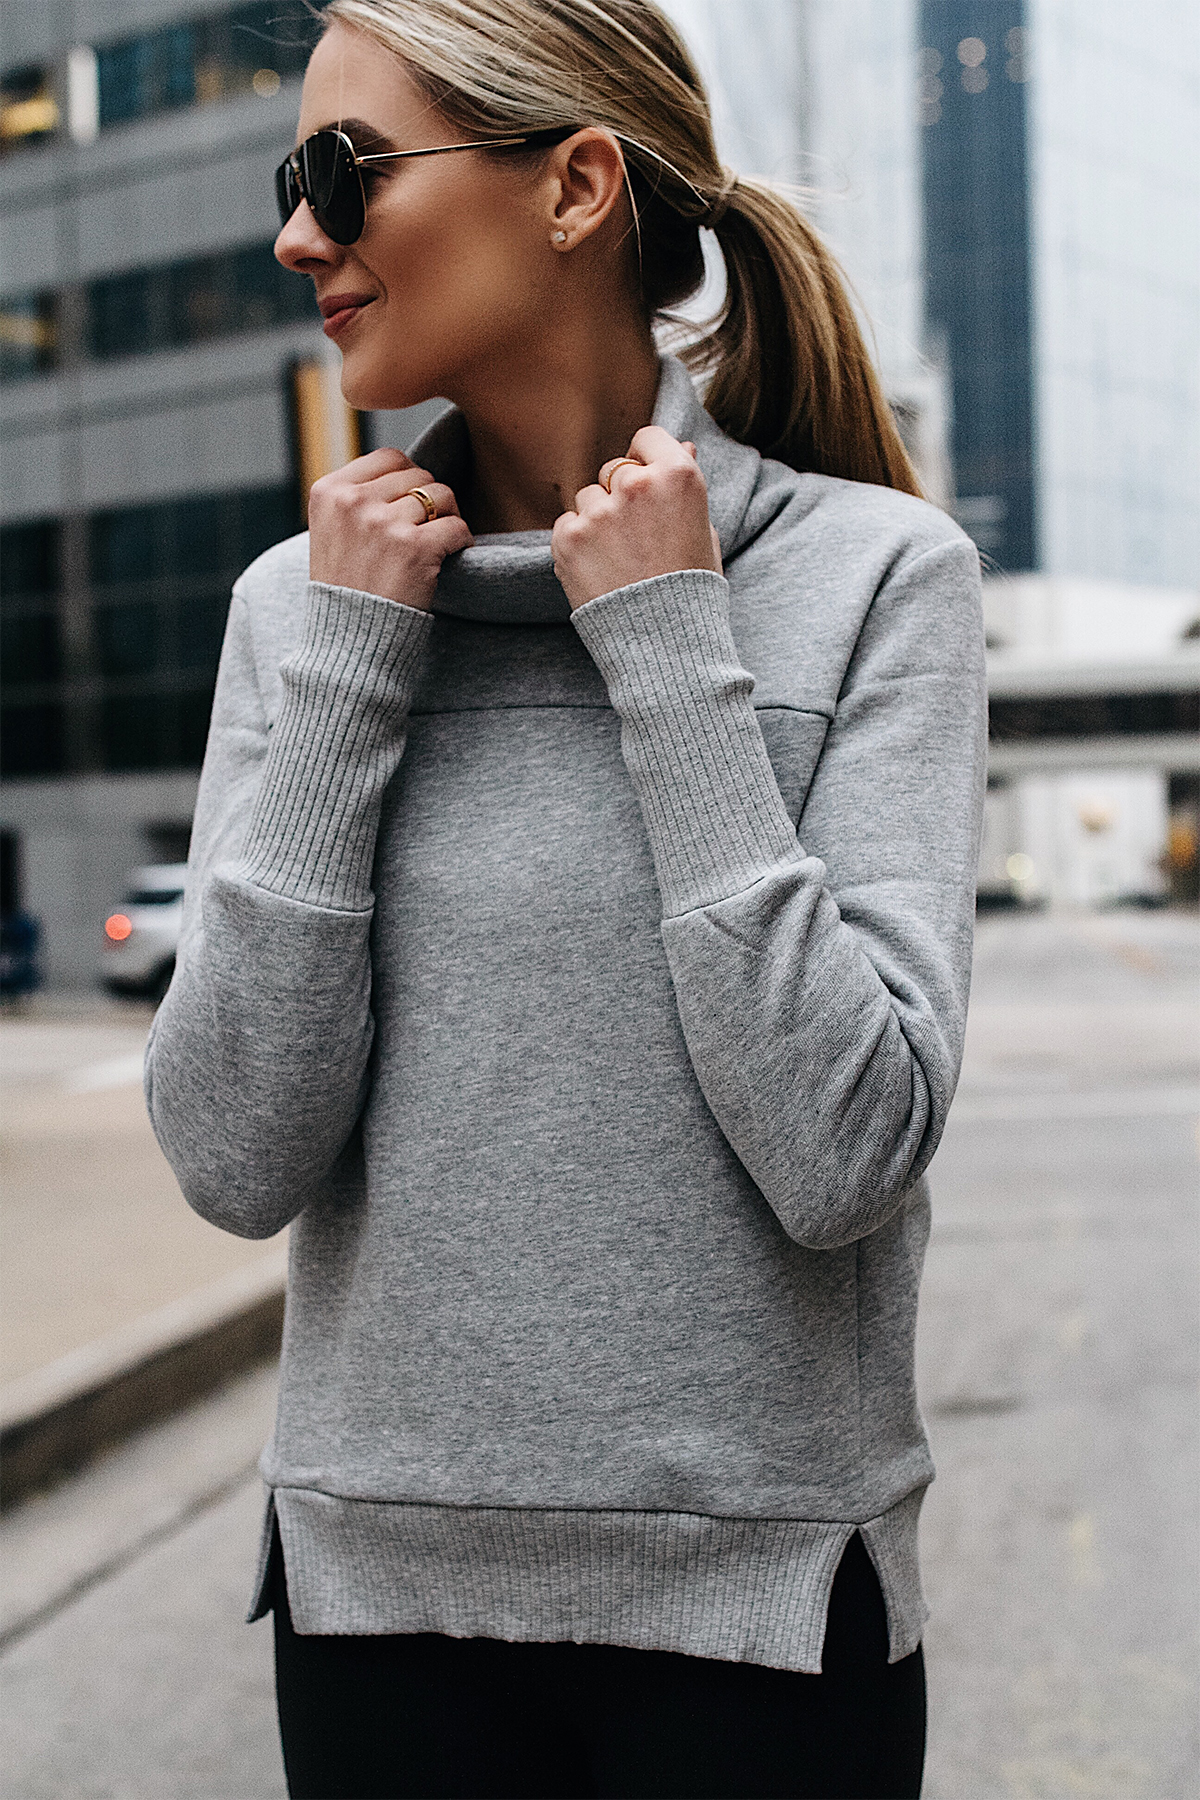 Blonde Woman Wearing Alo Grey Funnel Neck Sweatshirt Fashion Jackson Dallas Blogger Fashion Blogger Street Style Athletic Workout Apparel